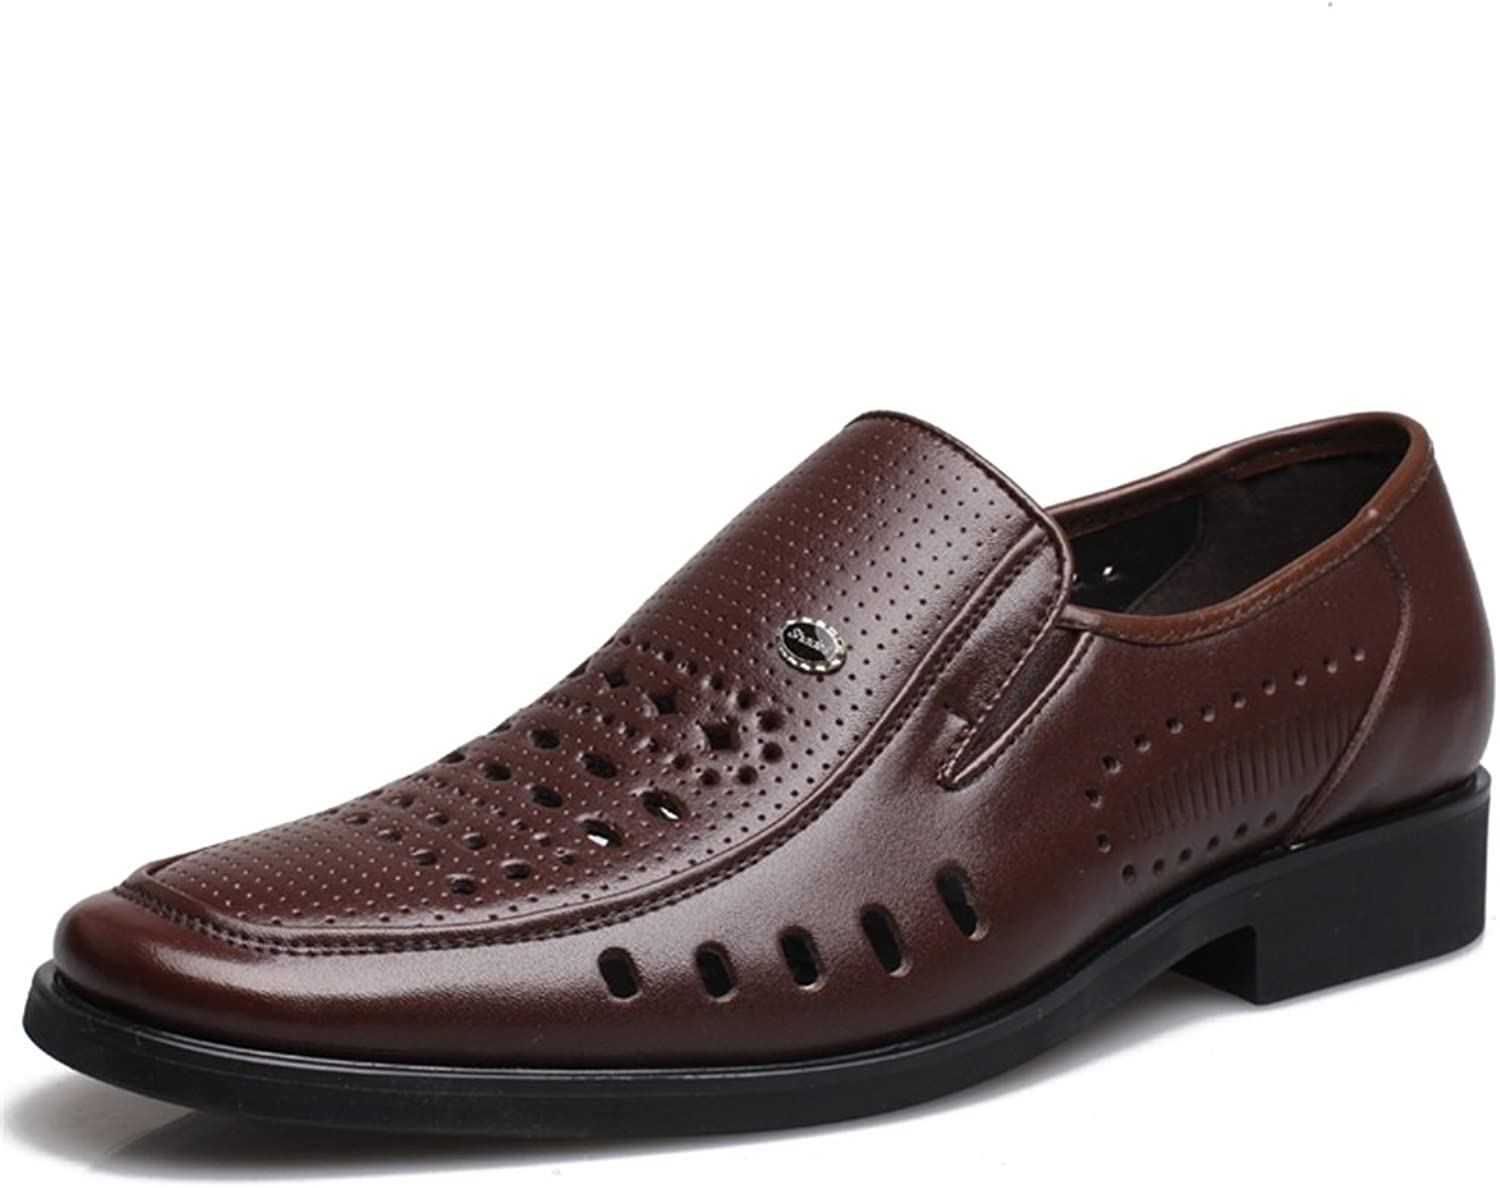 2018 New Men's shoes Business Leather Spring Summer Hollow-Out Breathable Loafers & Slip-Ons Driving shoes Office Casual Formal Business Work Dad shoes Black (color   B, Size   39)